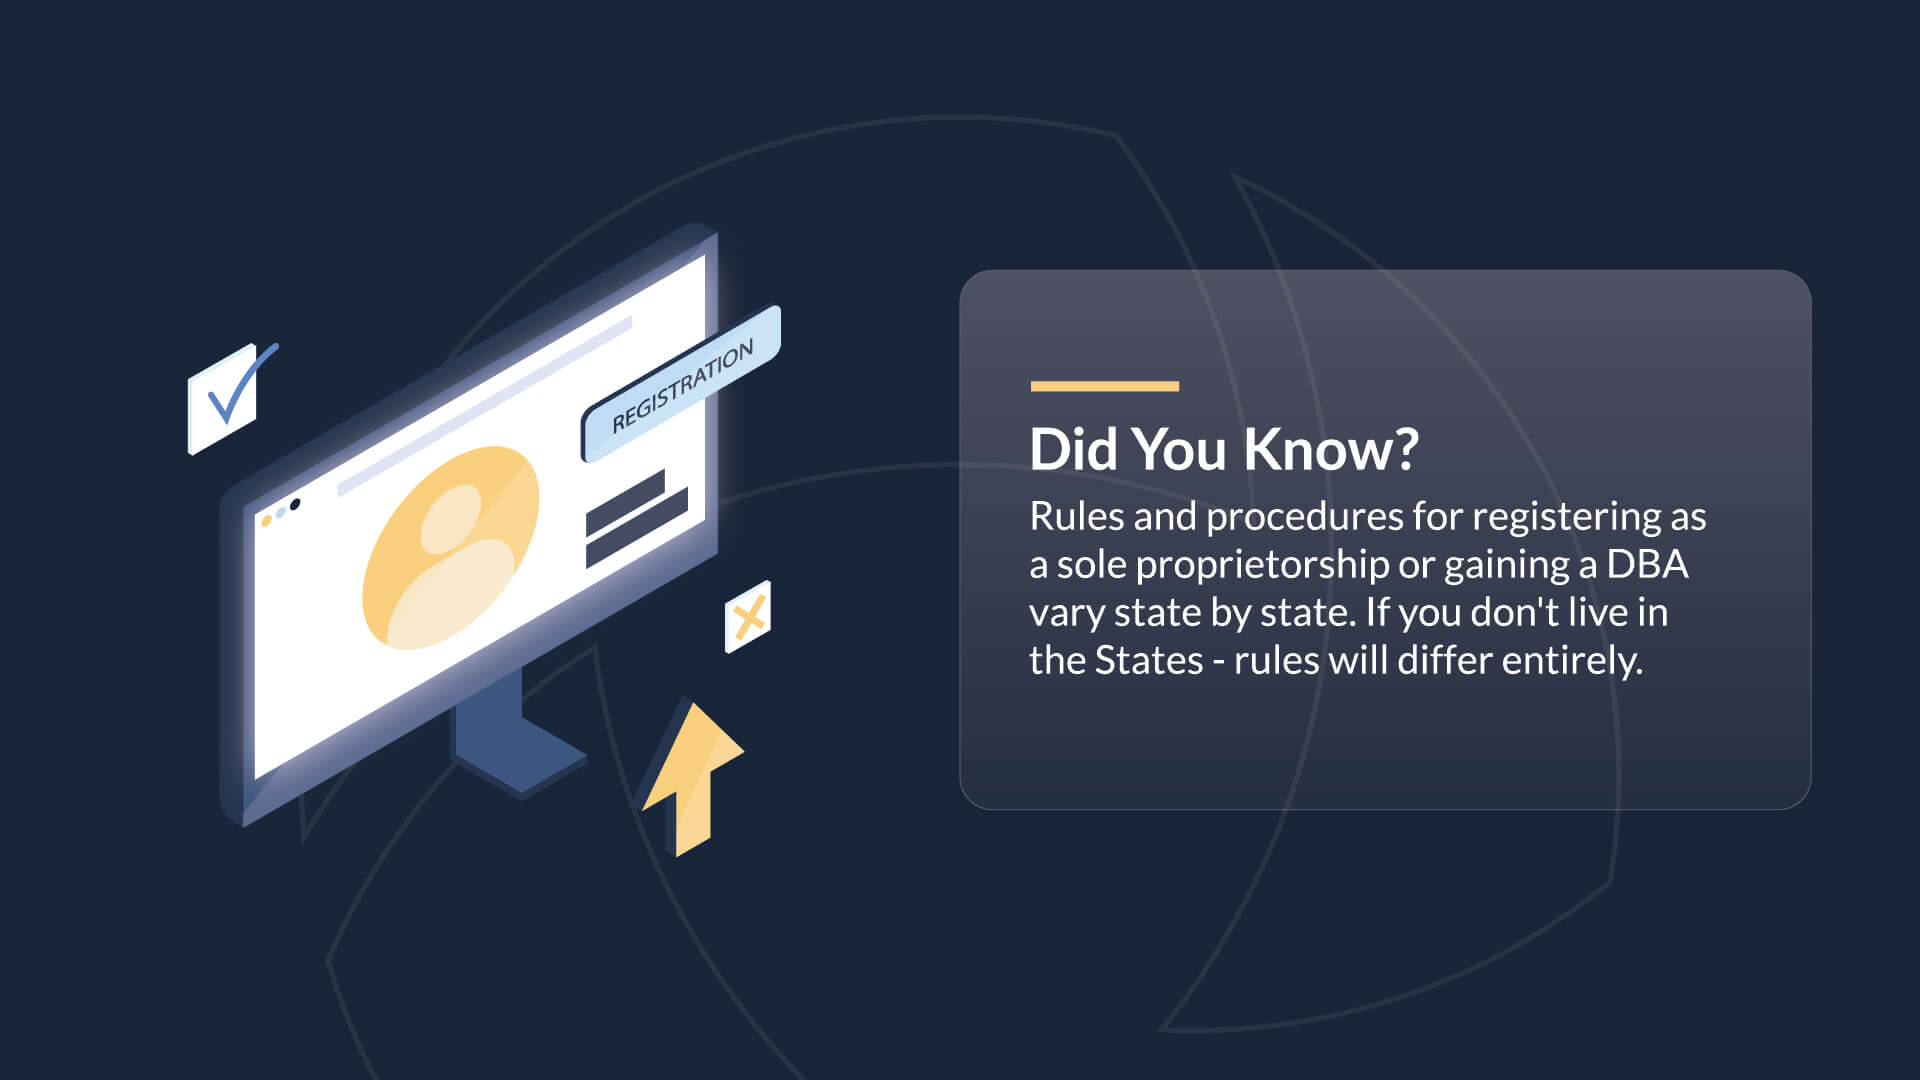 Did You Know? Rules and procedures for registering as a sole proprietorship or gaining a DBA vary state by state. If you don't live in the  States - rules will differ entirely.